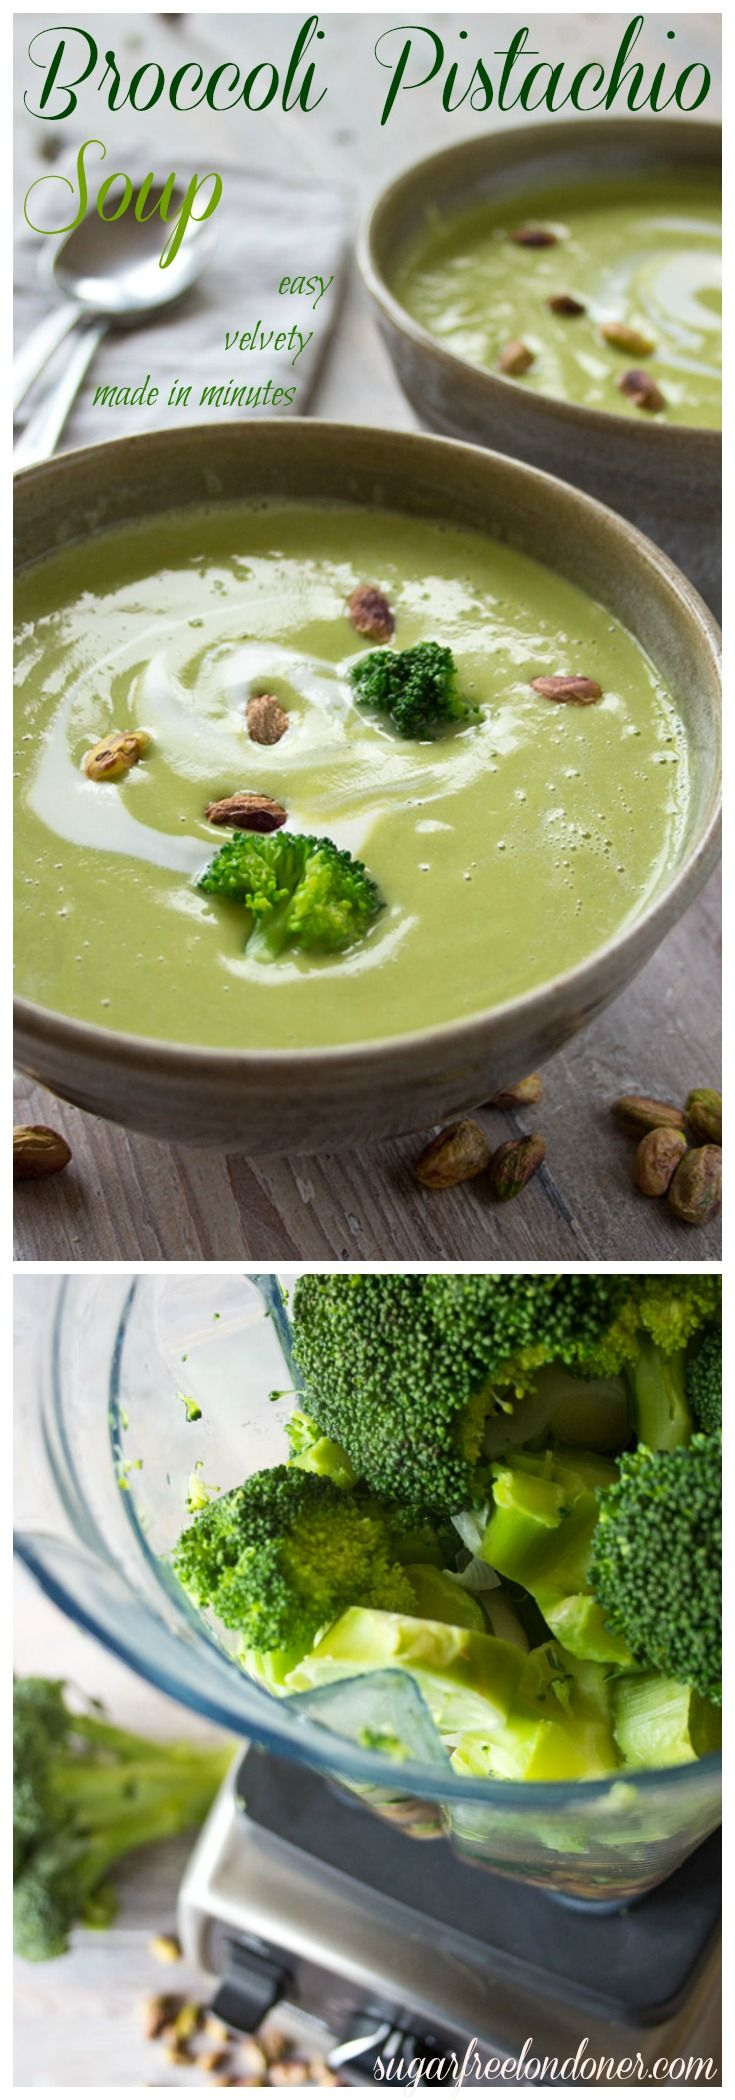 This smooth and creamy broccoli pistachio soup is an easy and delicious way to load up on antioxidants and vitamin C. Great as a quick, warming lunch or as a light starter course.